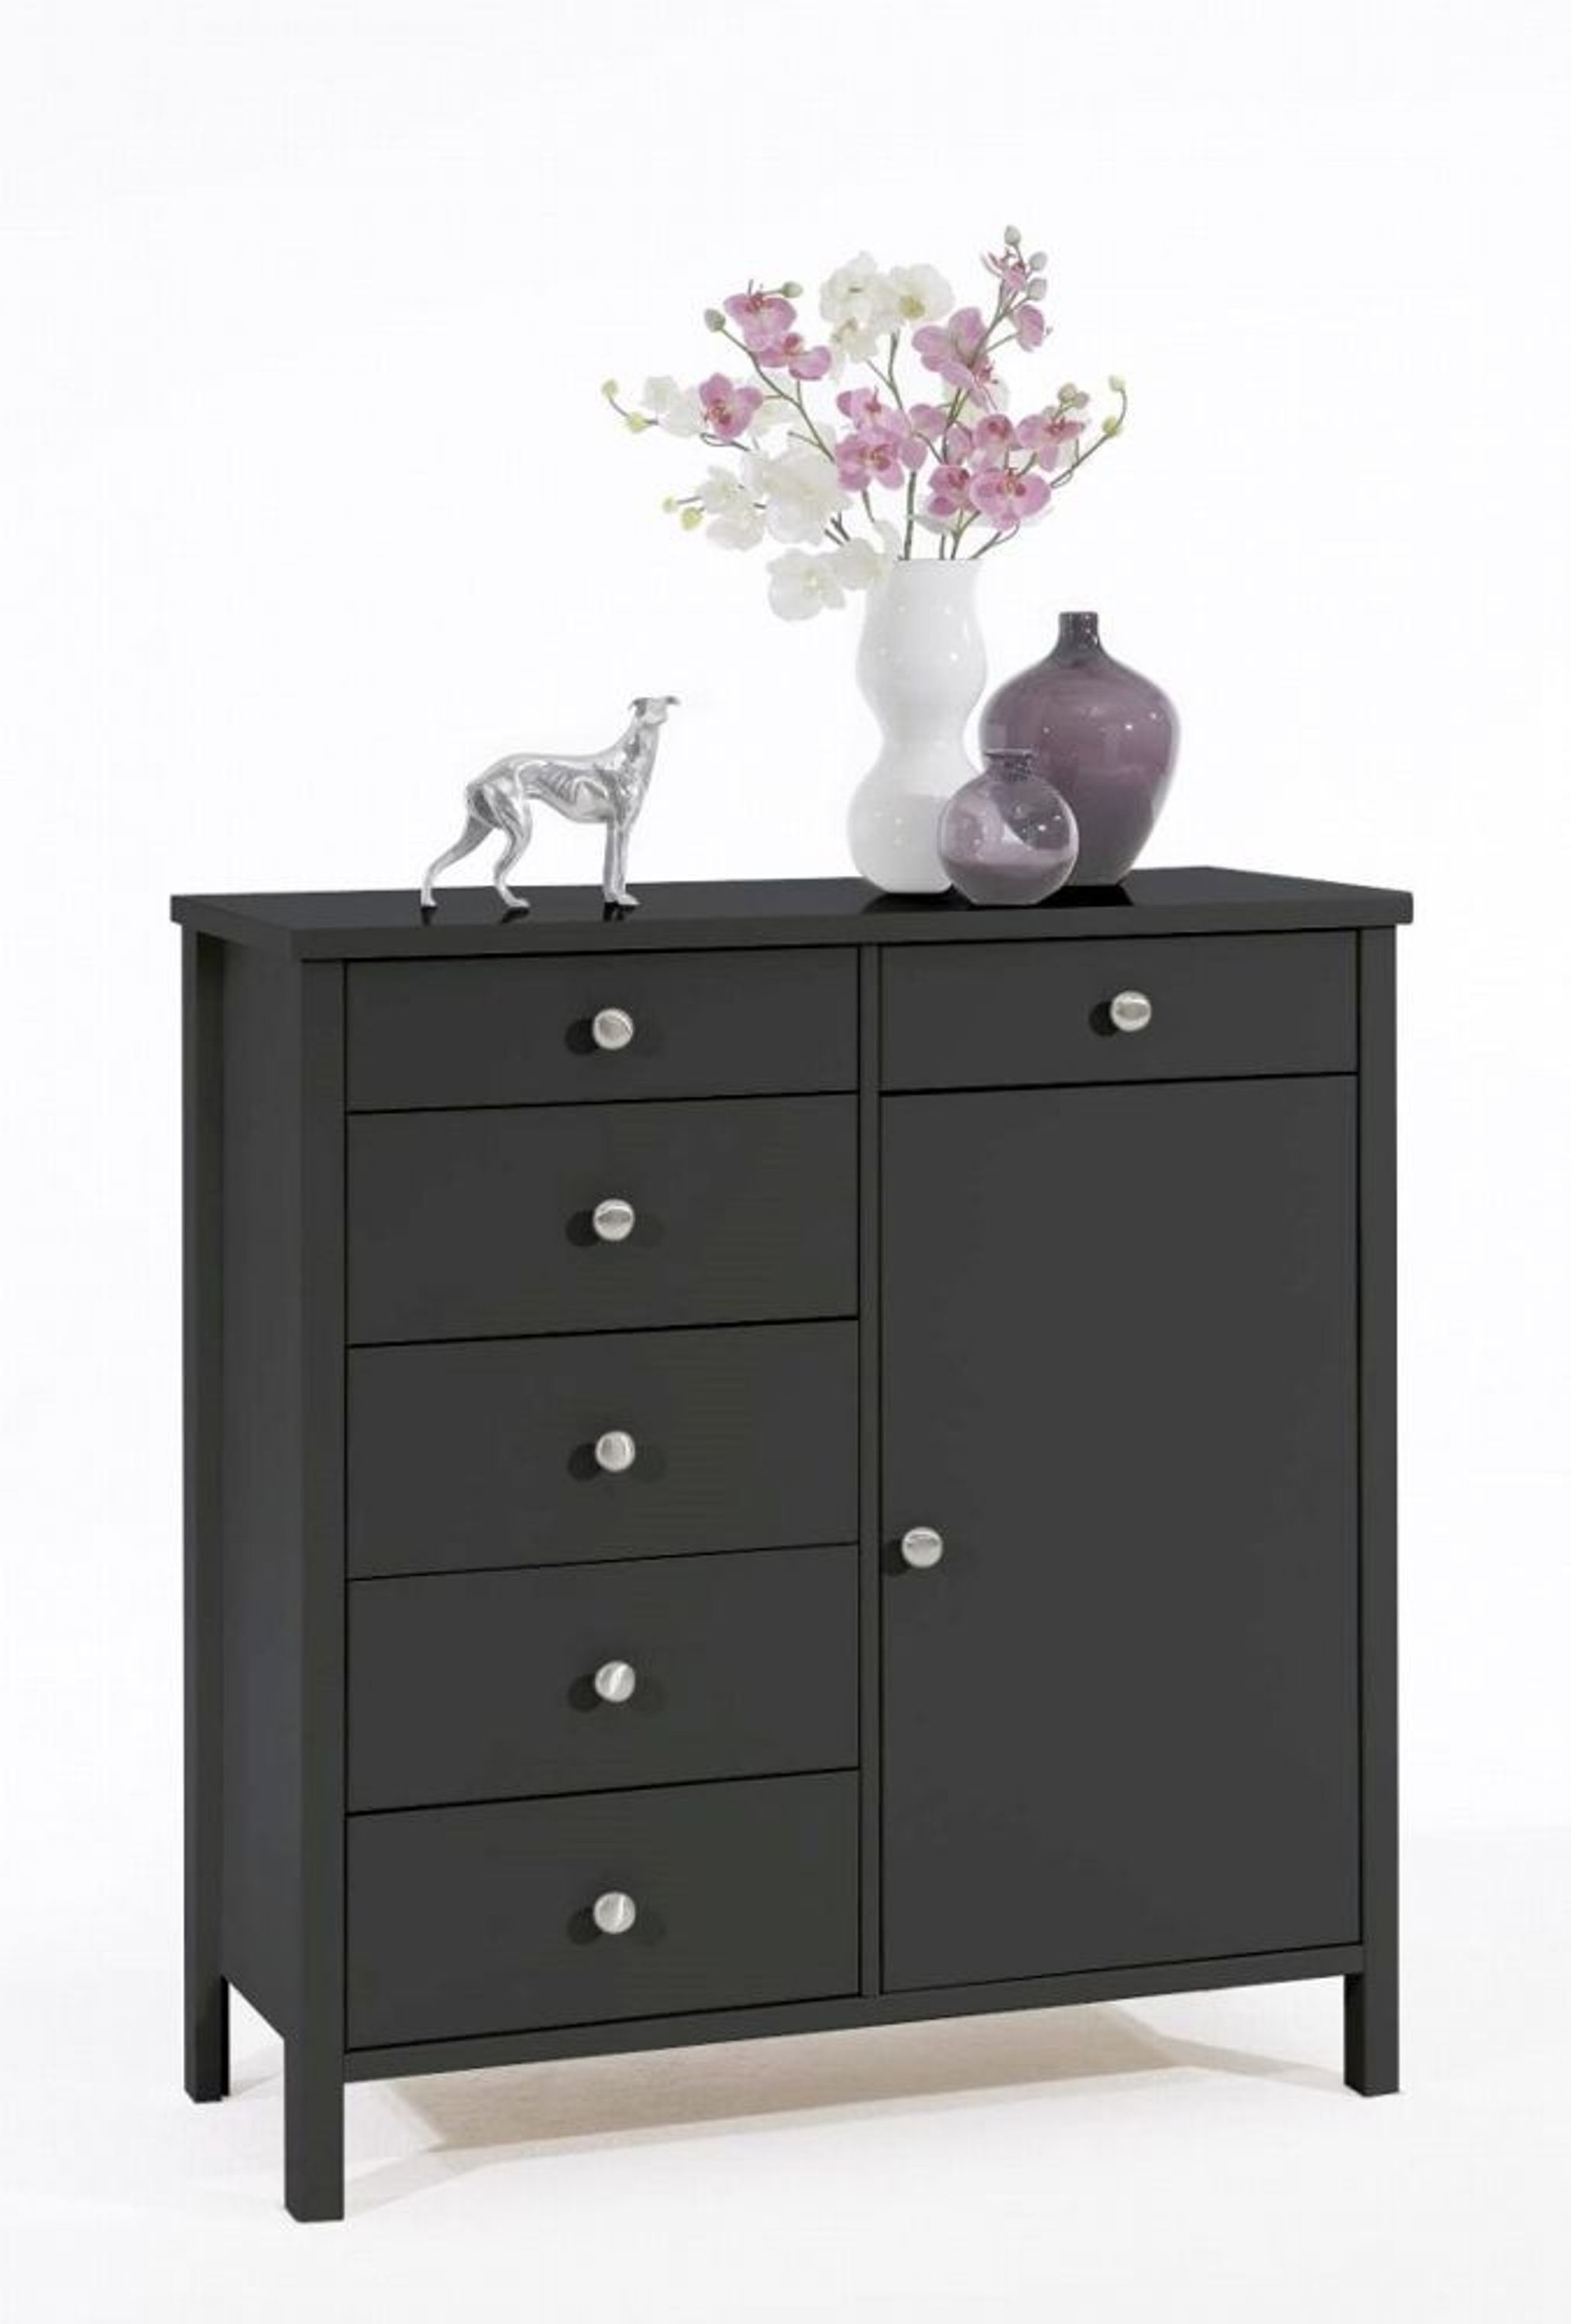 kommode aletta 1 t rig schwarz braun mdf kaufen bei. Black Bedroom Furniture Sets. Home Design Ideas